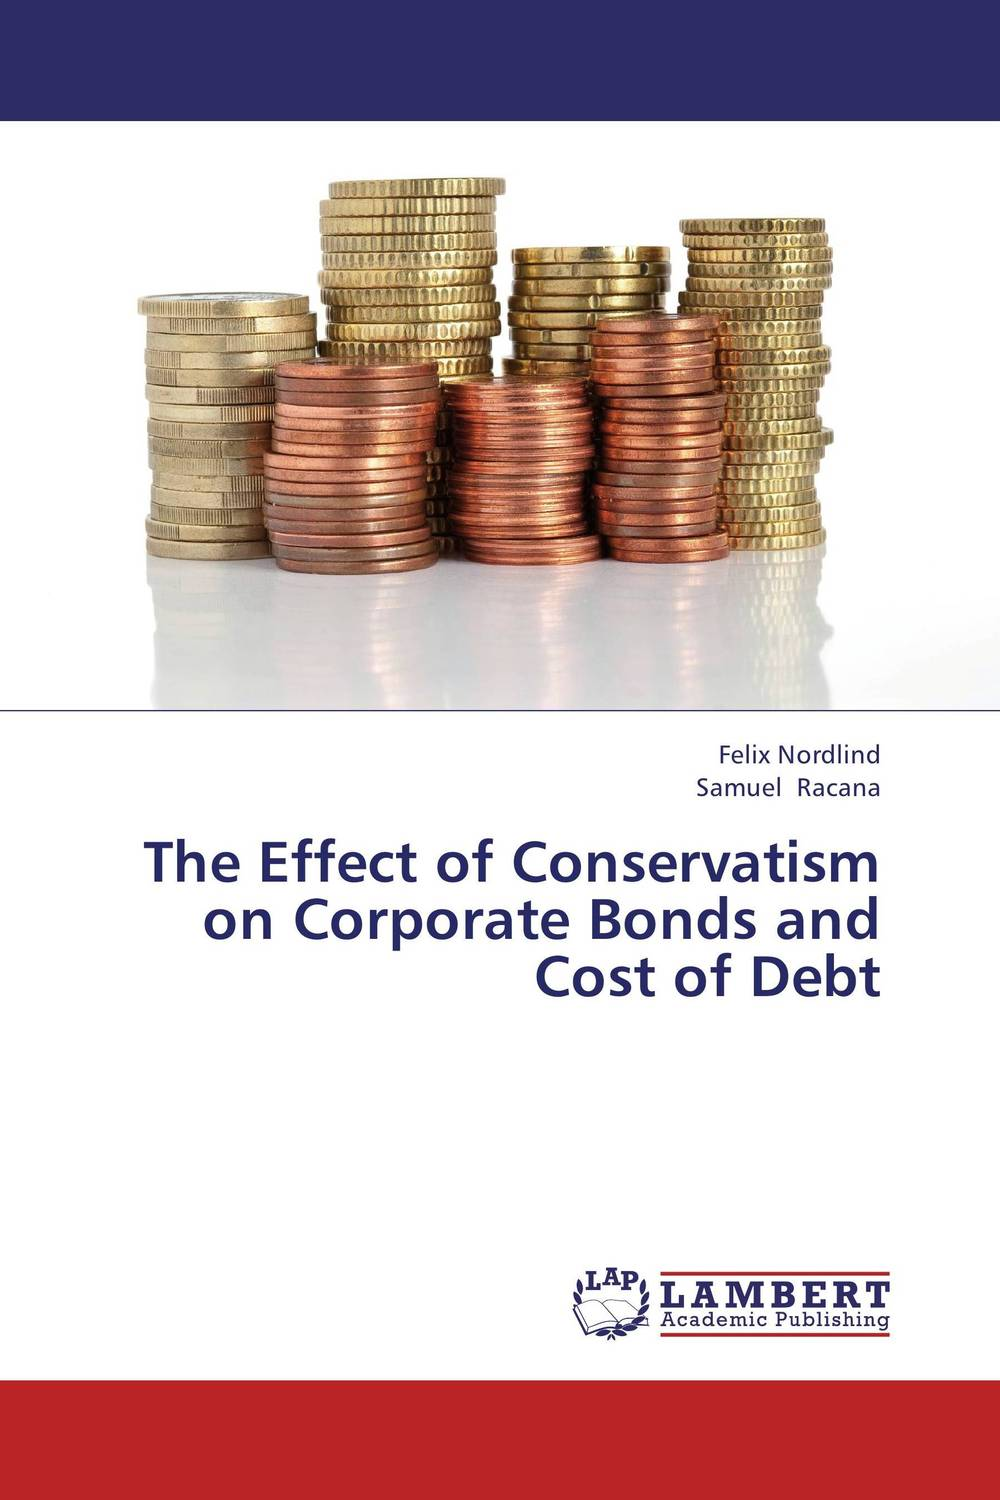 The Effect of Conservatism on Corporate Bonds and Cost of Debt